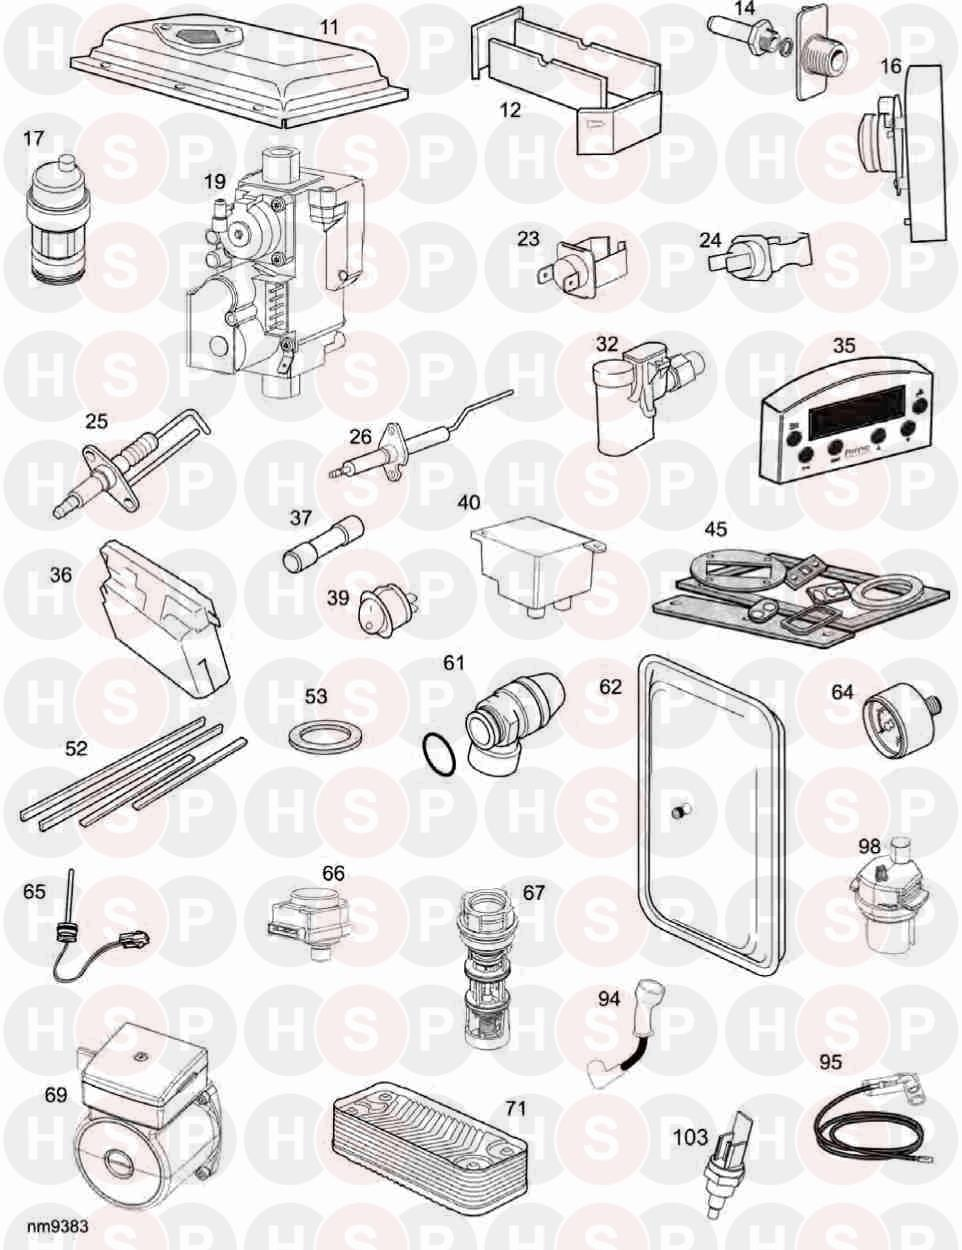 Ideal ISAR HE35 Appliance Diagram (Short parts list XF